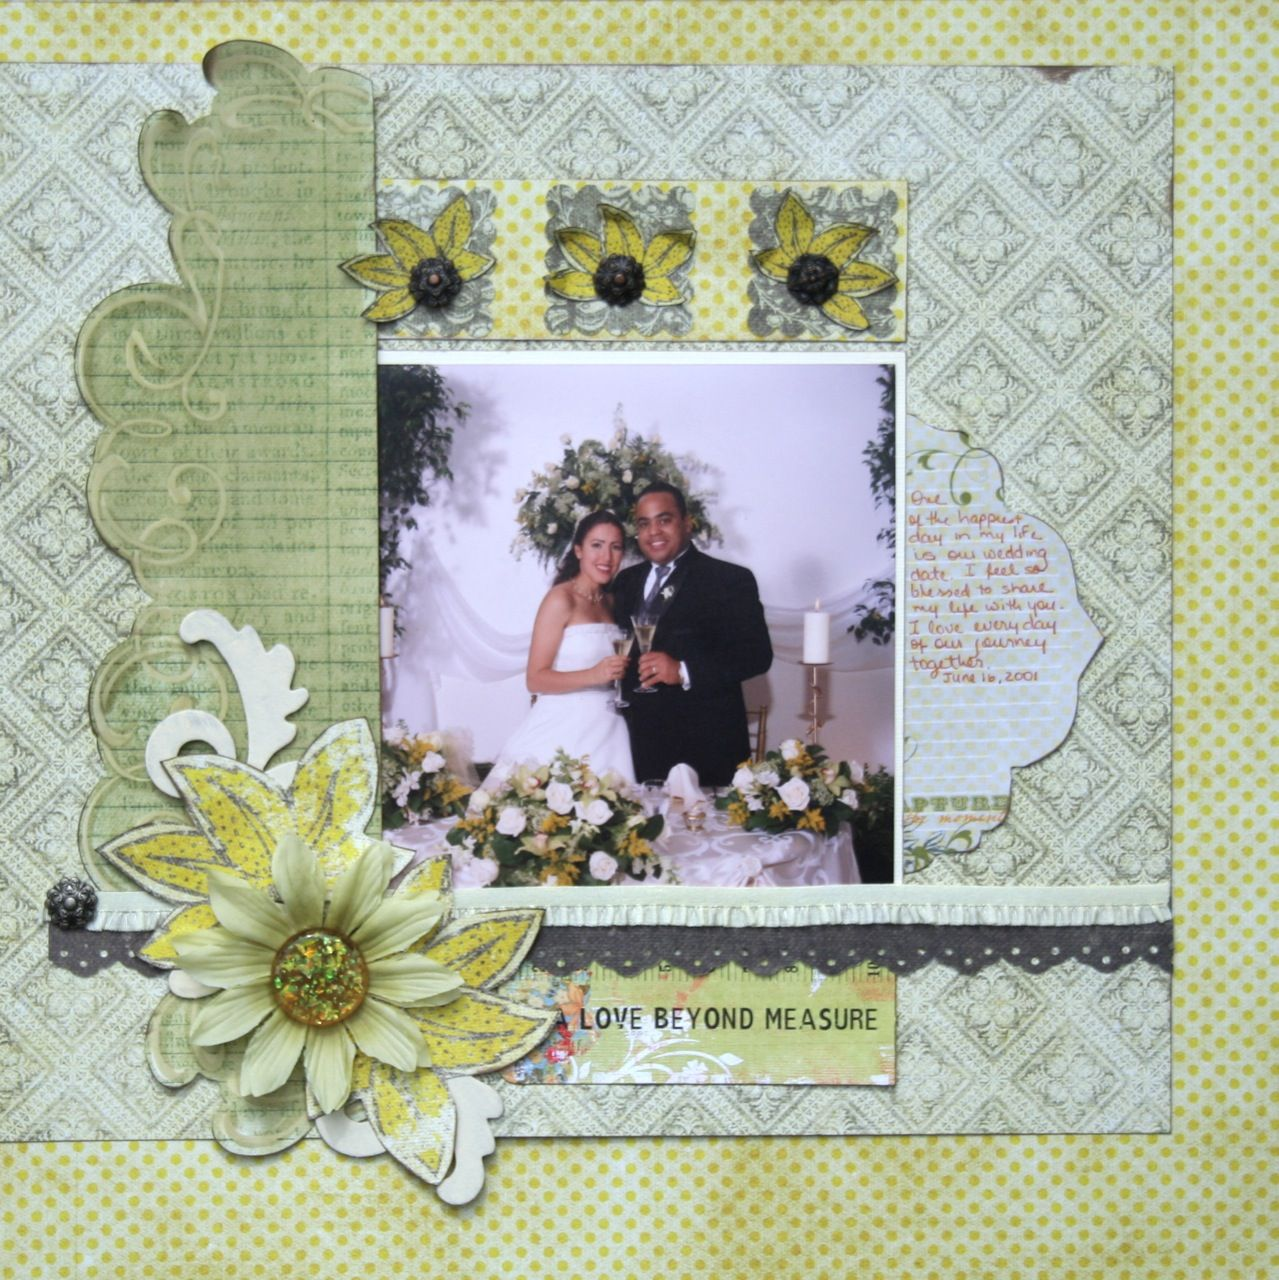 Simple scrapbook page layout ideas game save ios scrap book pinterest scrapbook layouts - Scrapbooking idees pages ...